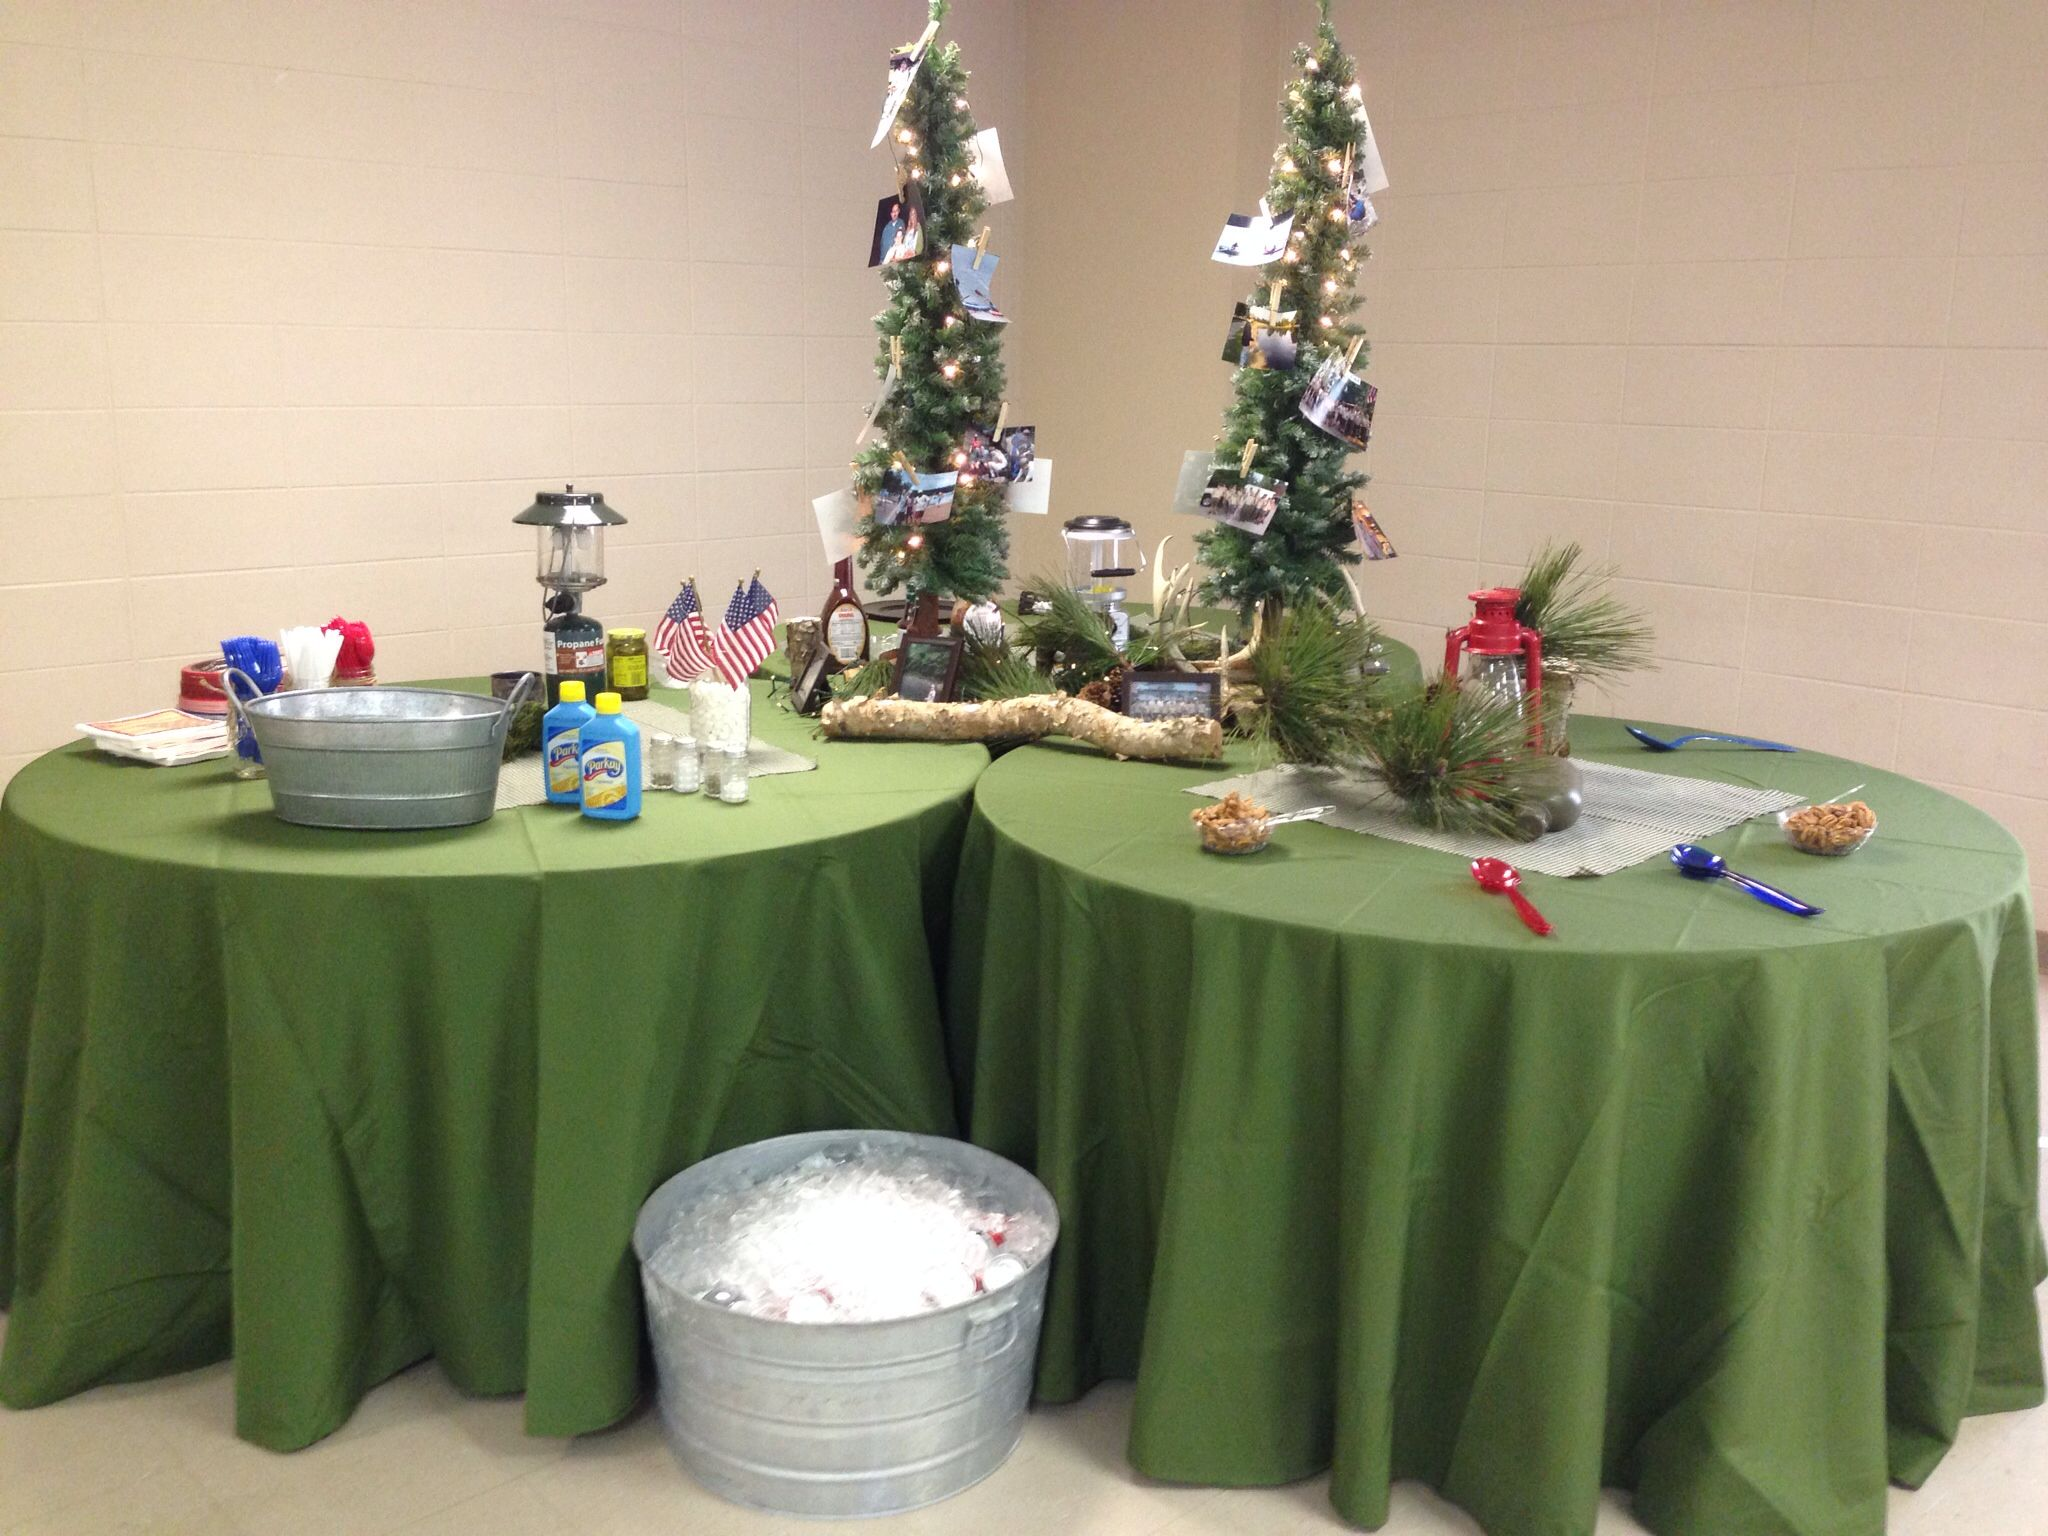 Eagle scout court of honor camping woodland theme for Award ceremony decoration ideas